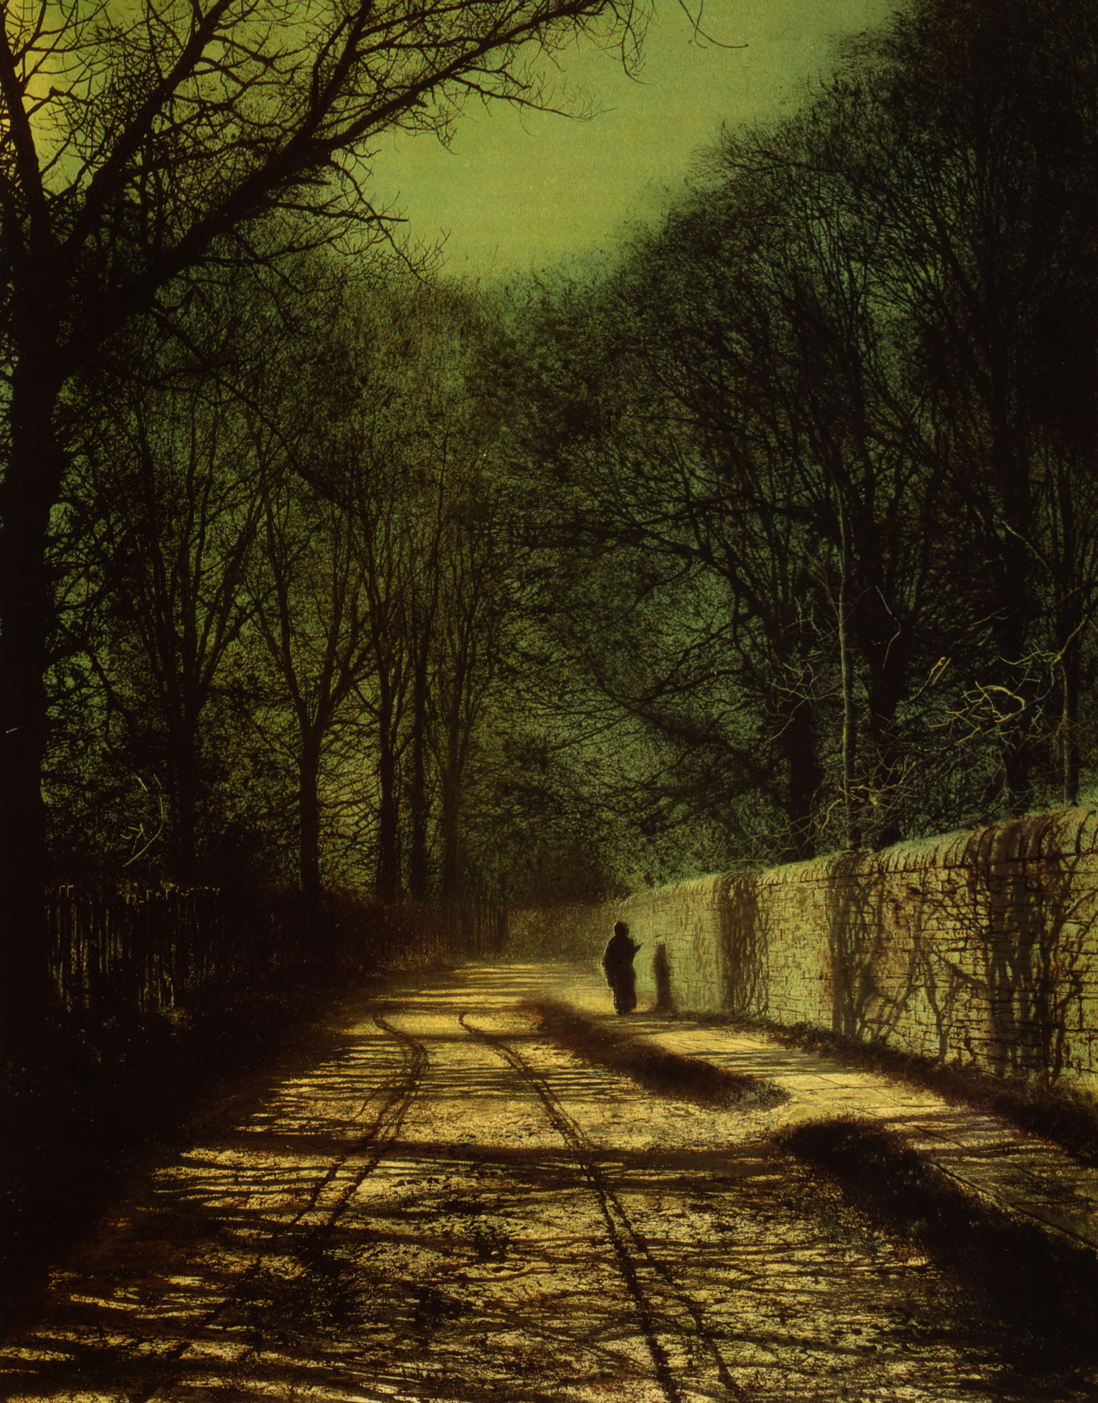 Atkinson Grimshaw, Tree Shadows on the Park Wall, Roundhay Park, Leeds